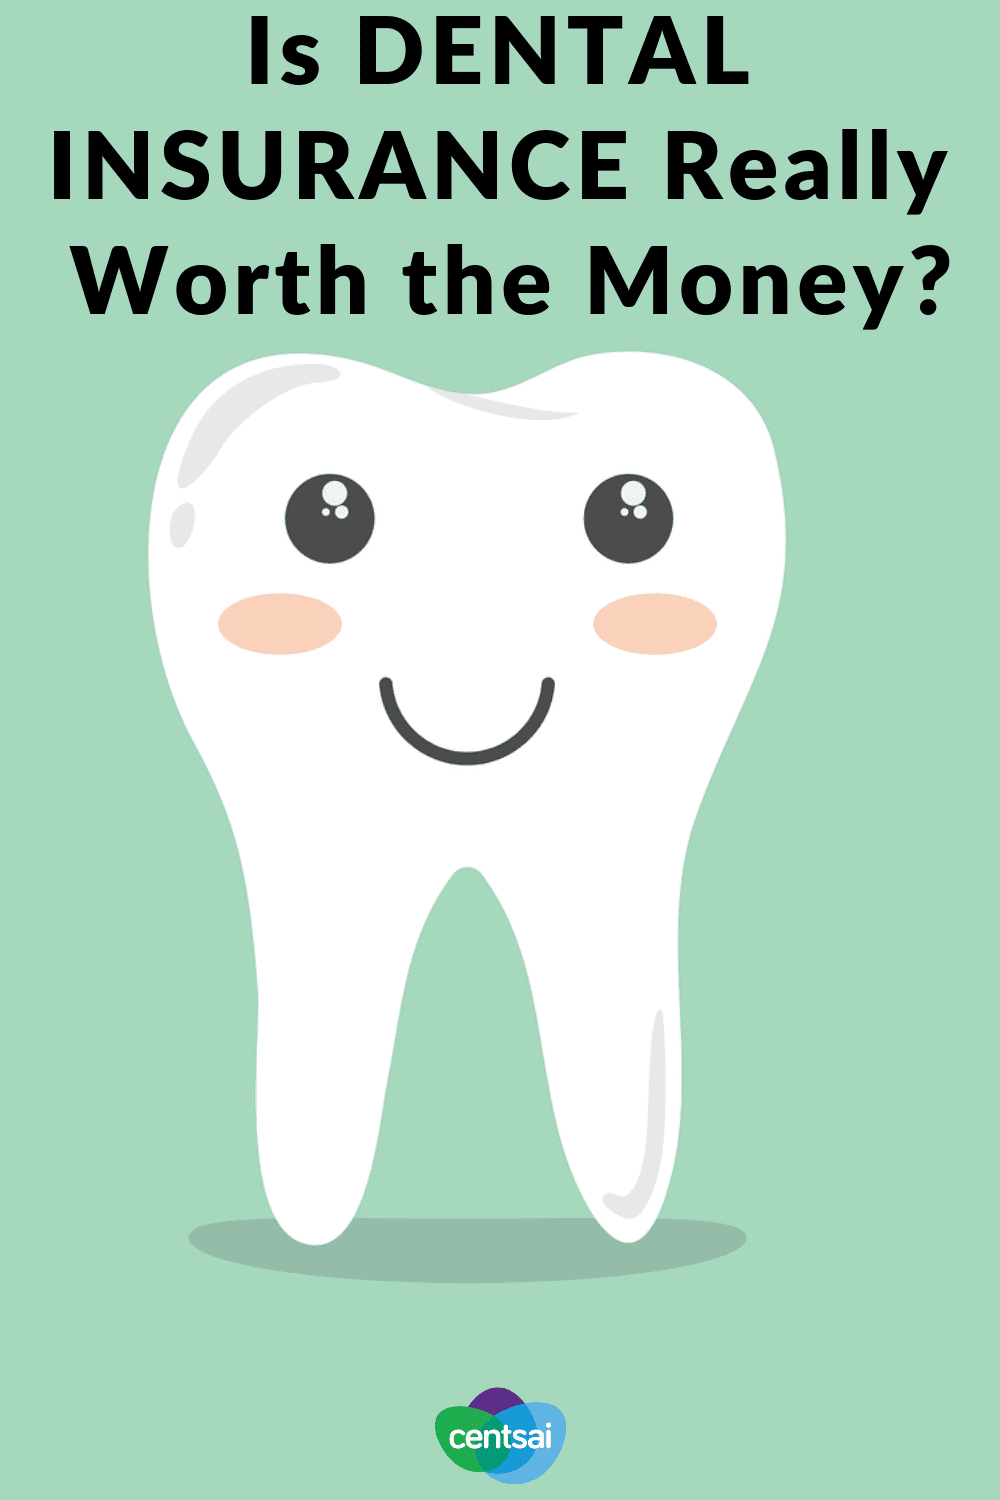 "Is Dental Insurance Really Worth the Money? When it comes to dental care, it often feels like you have a choice between letting your teeth rot or letting your bank account wither away. You find yourself asking, ""Is dental insurance worth the money?"" Do a little financial calculation to find out whether you can keep both your teeth and your cash. #insuranceblog #dentalinsurance"